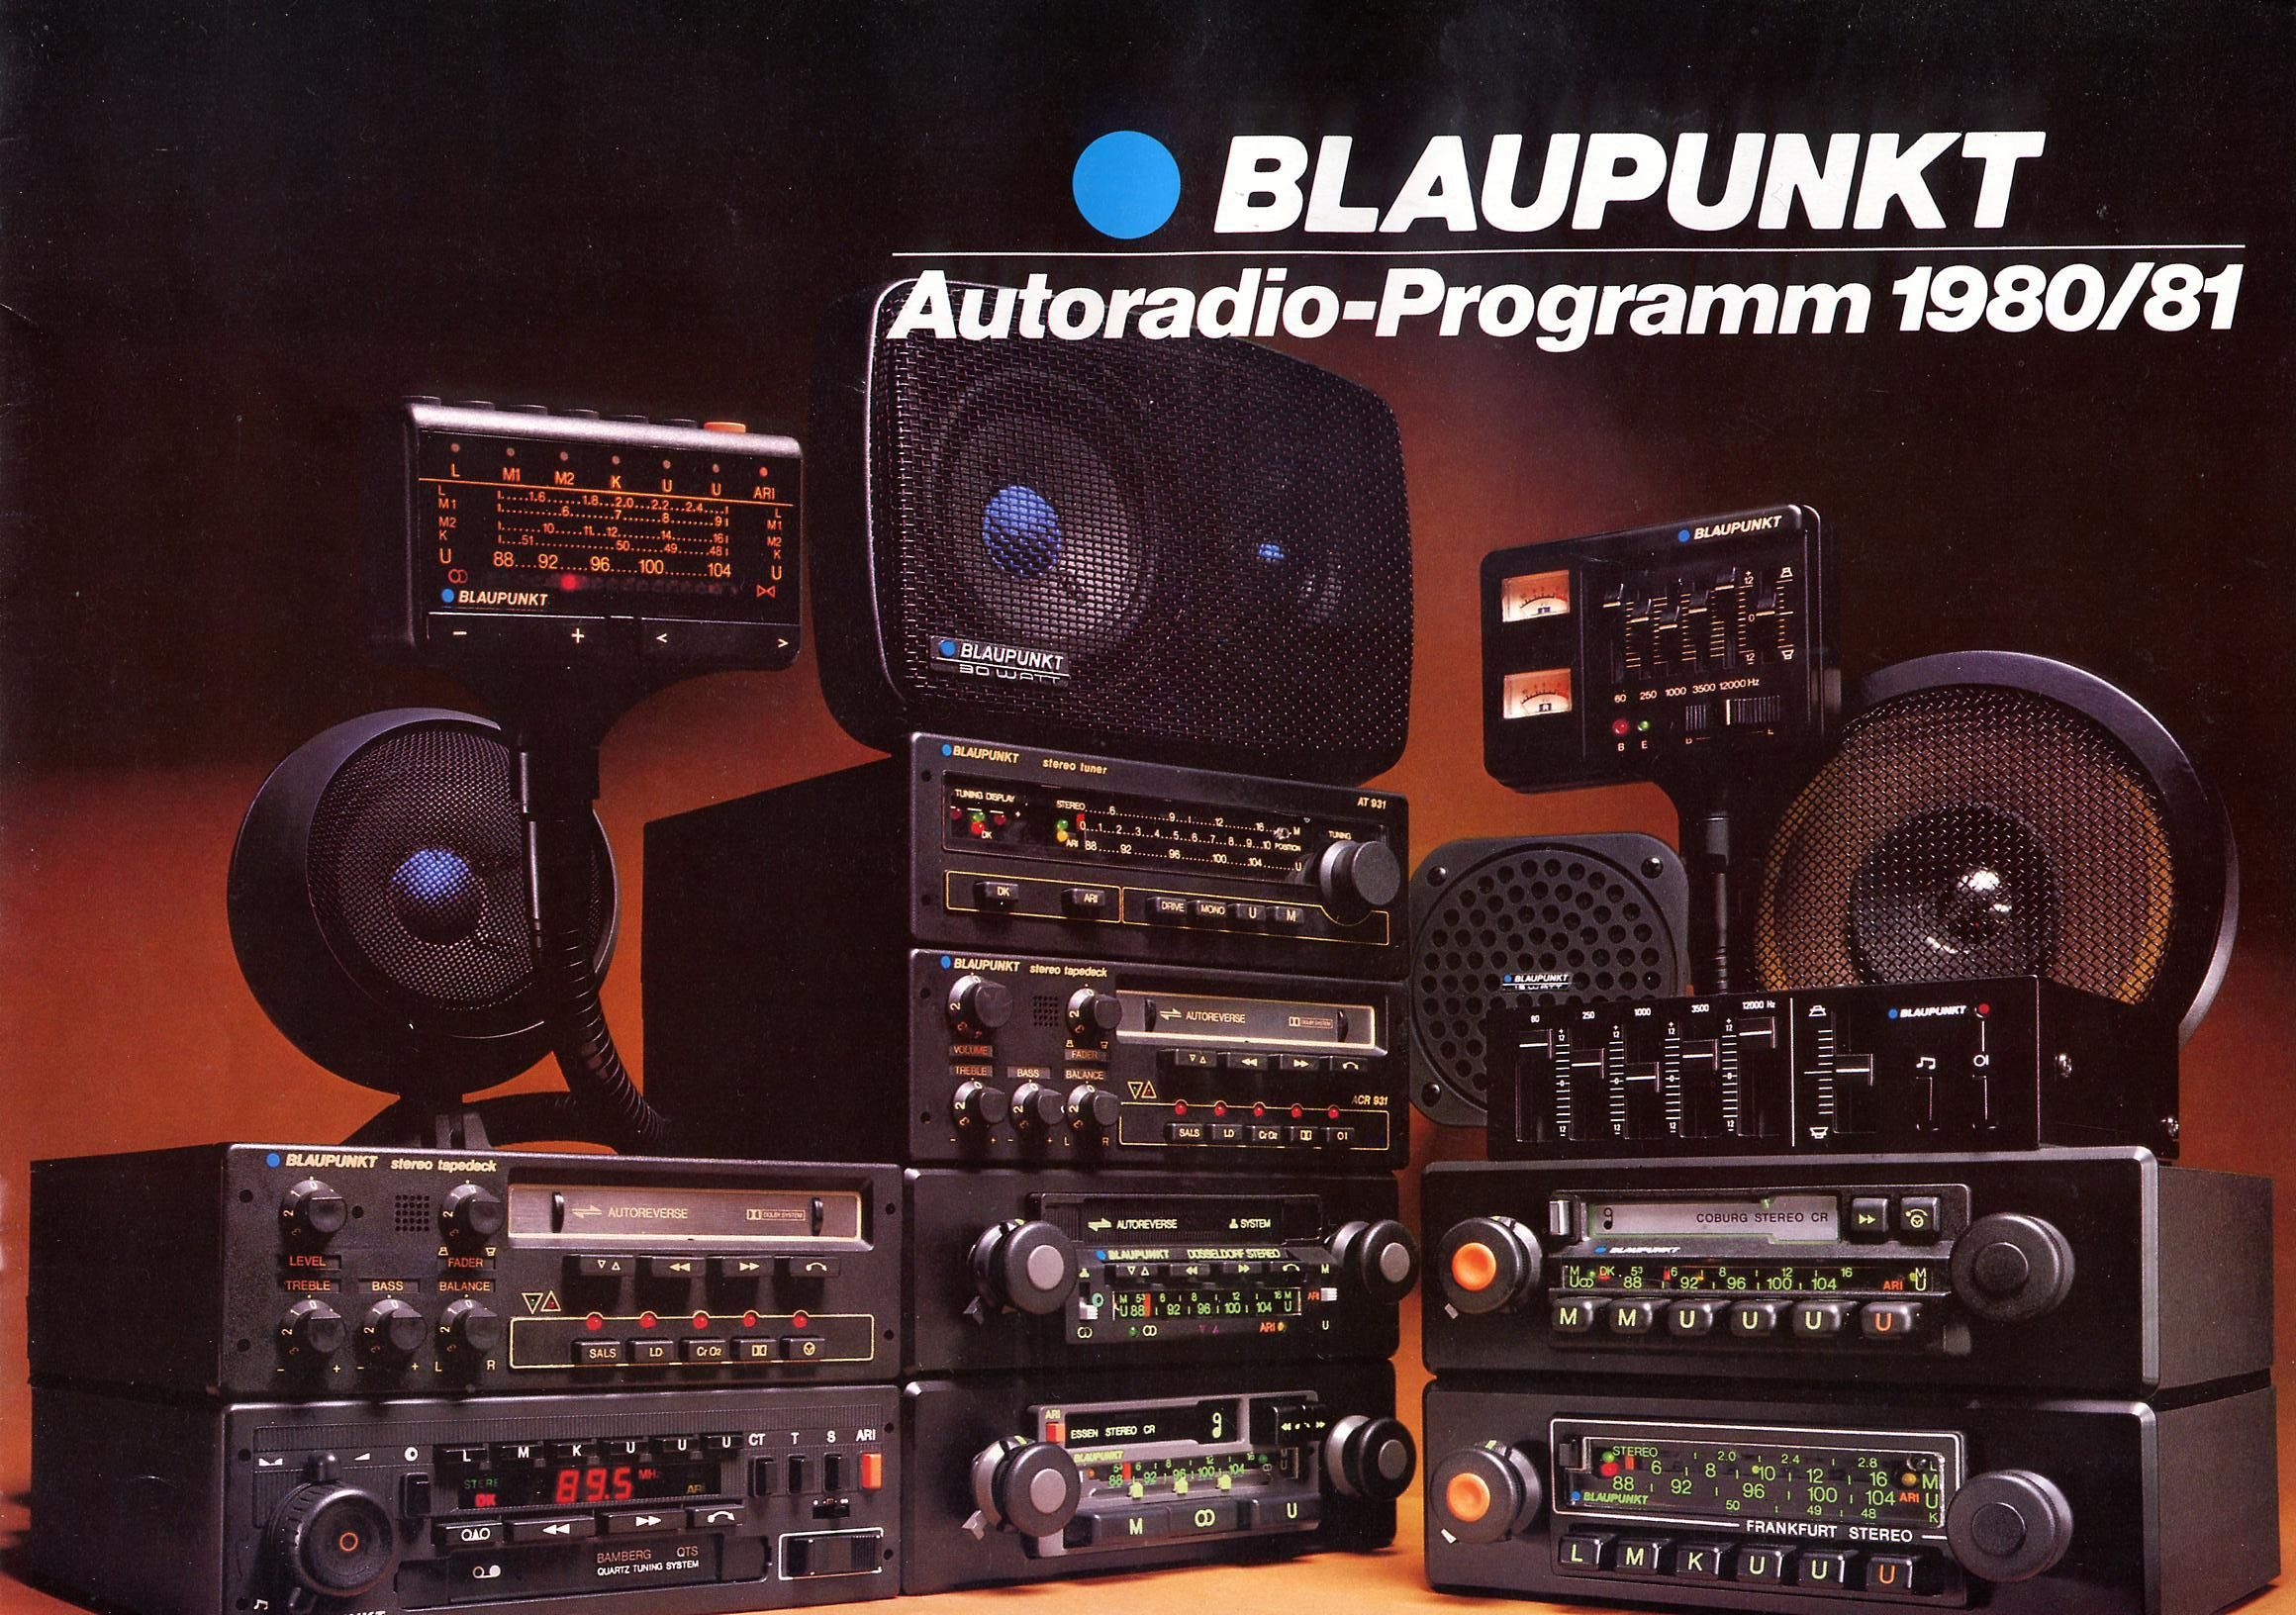 Pin By Dean Adolpho On Car Audio Pinterest Cars And Old Blaupunkt Pc Game School Som Audiophile Radios